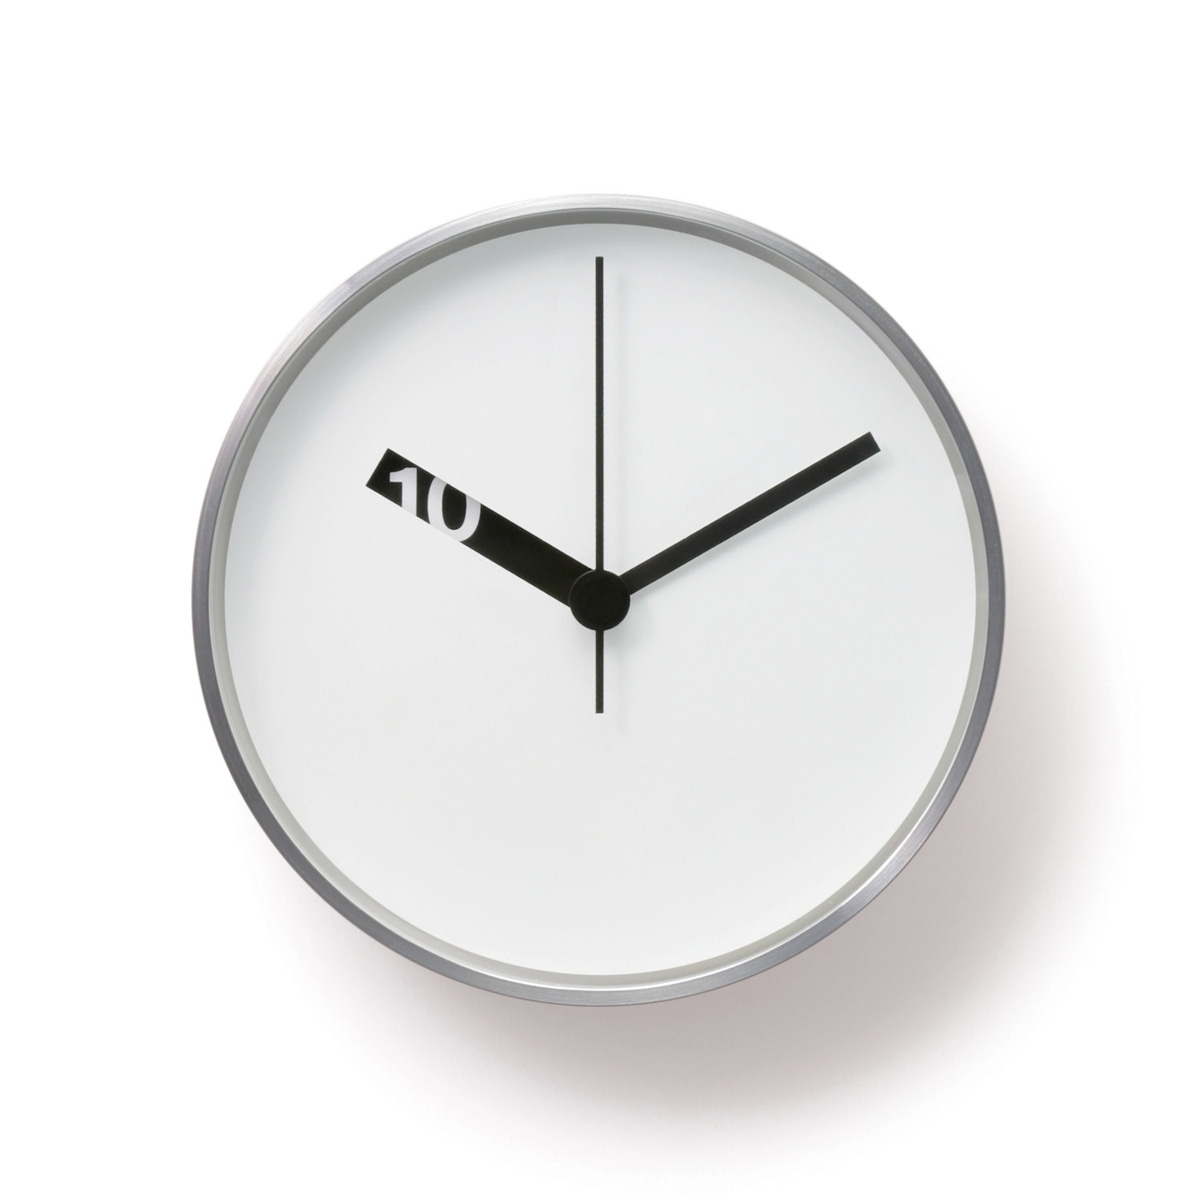 Ross mcbride extra normal wall clock white nova68 click to view additional images amipublicfo Choice Image